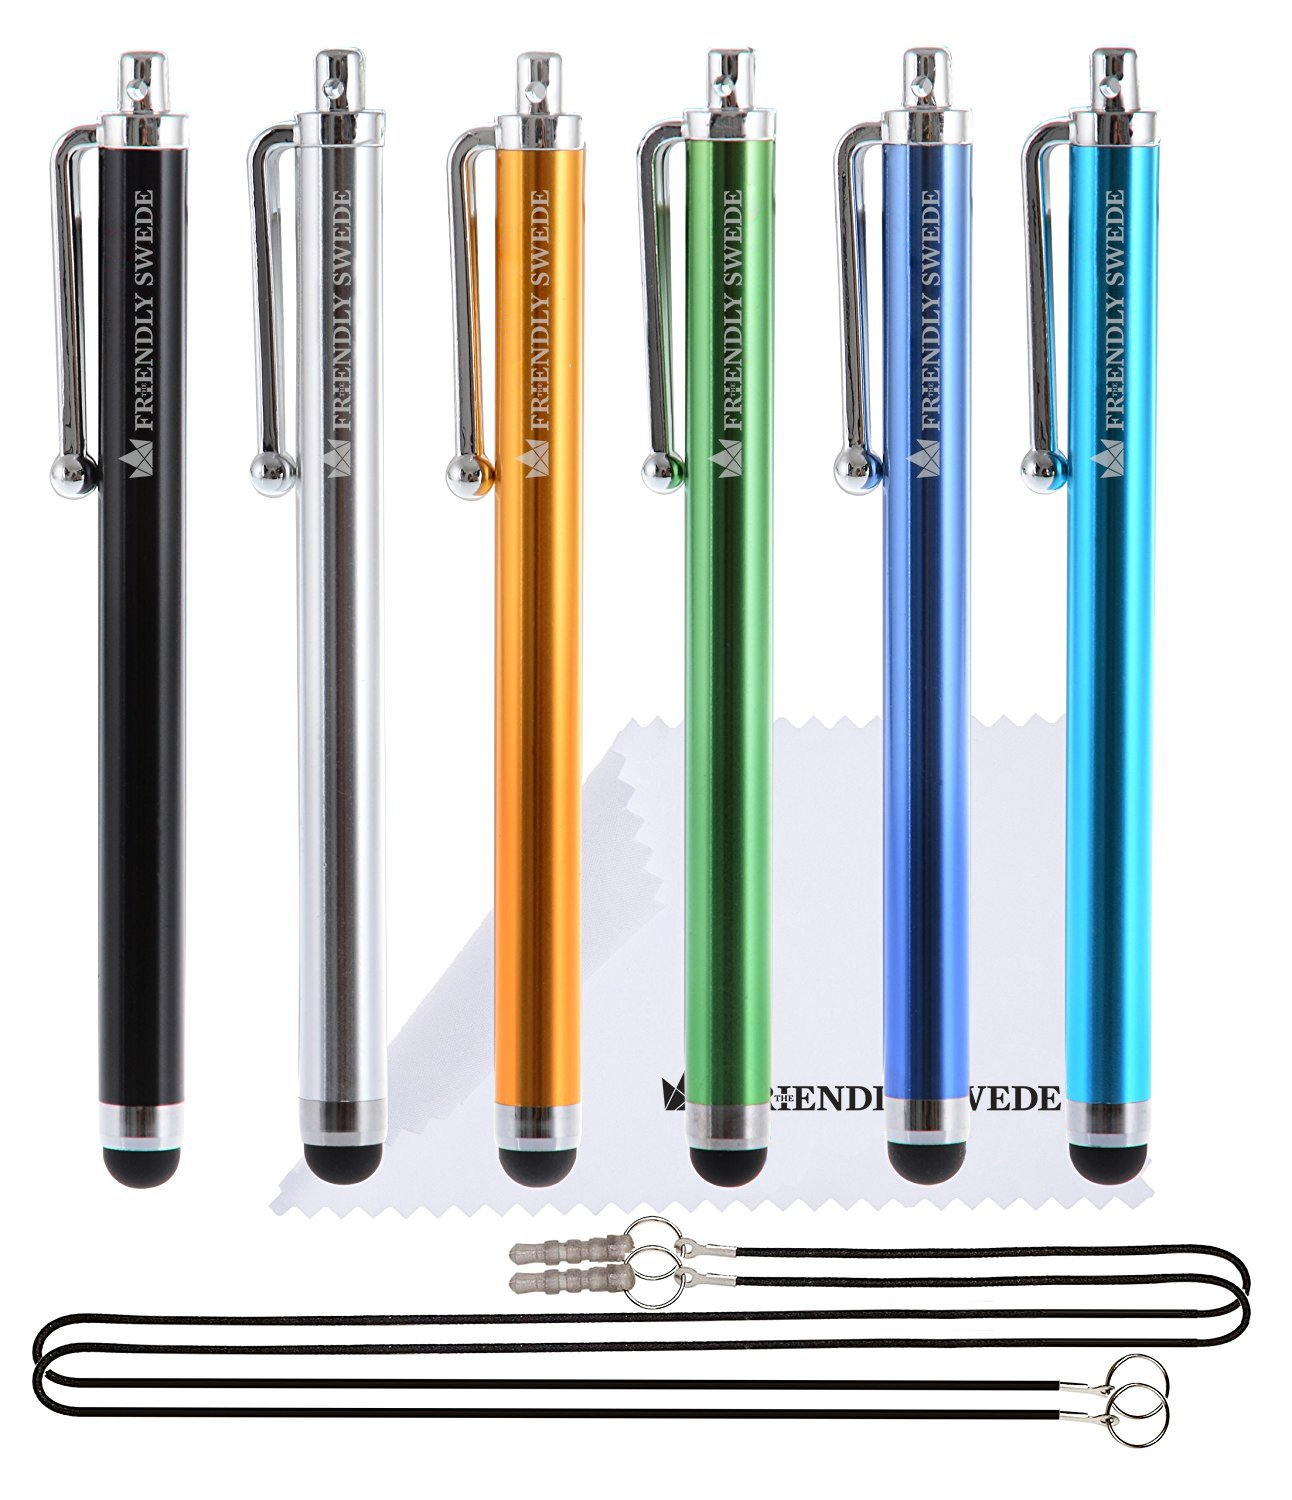 "Capacitive Touch Screen Stylus Pens 4.5"", 6-pack - including 2 x 15"" Lanyards and Screen Cleaning Cloth by The Friendly Swede (Black, Gold, Silver, Blue, Sea Blue, Green)"